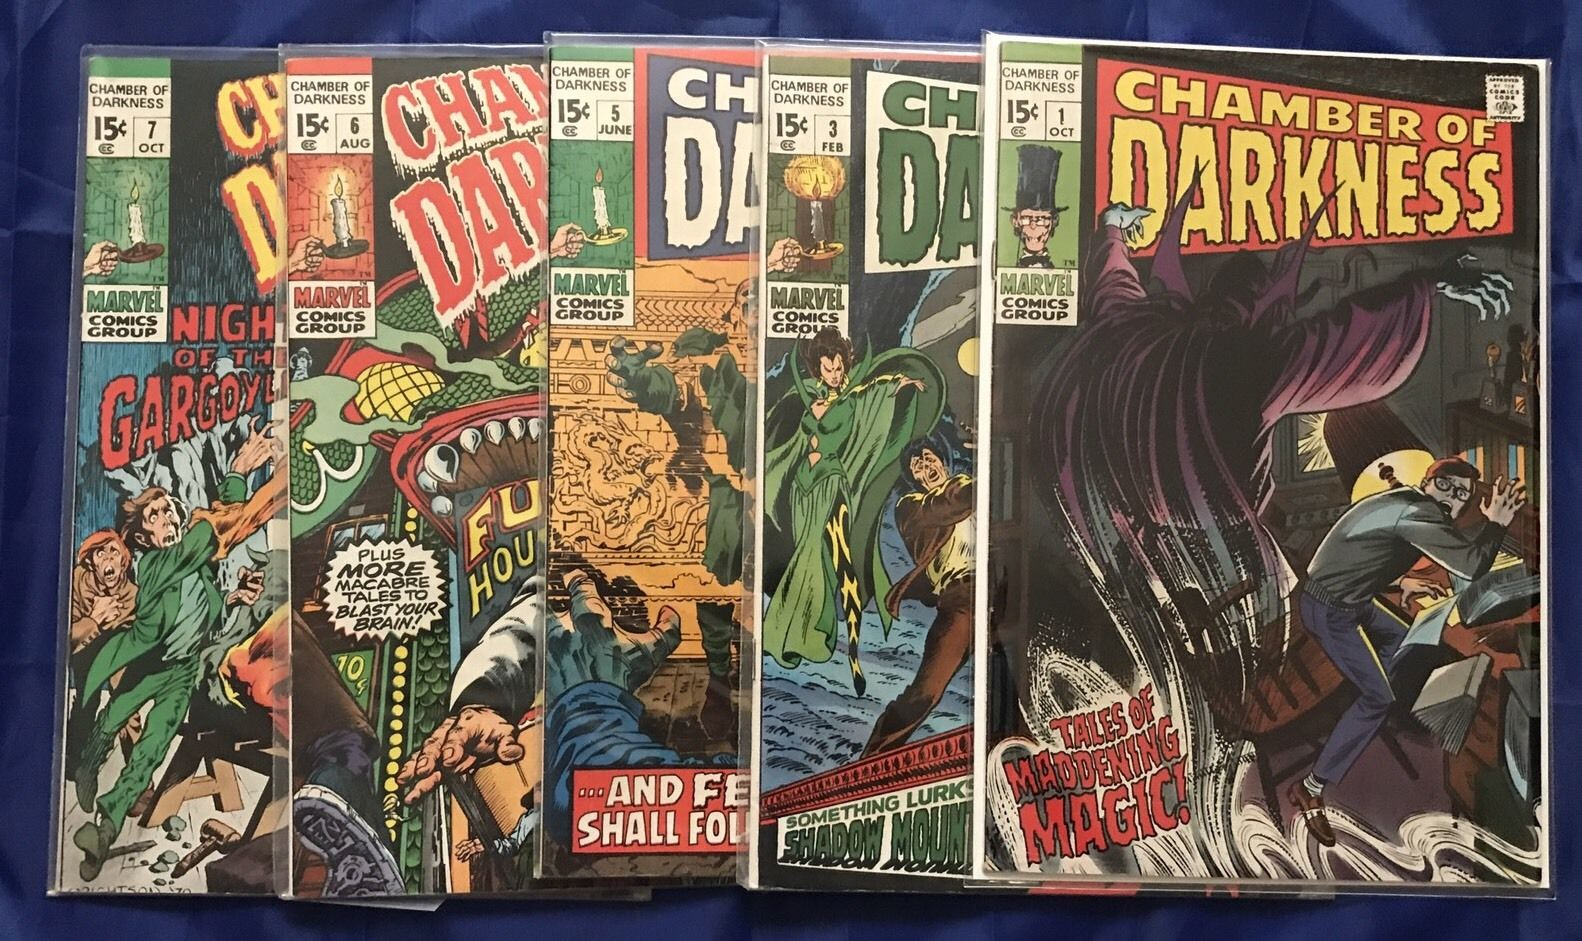 TALES OF THE DARKNESS #1 LOT OF 5 COPIES NM- IMAGE COMICS